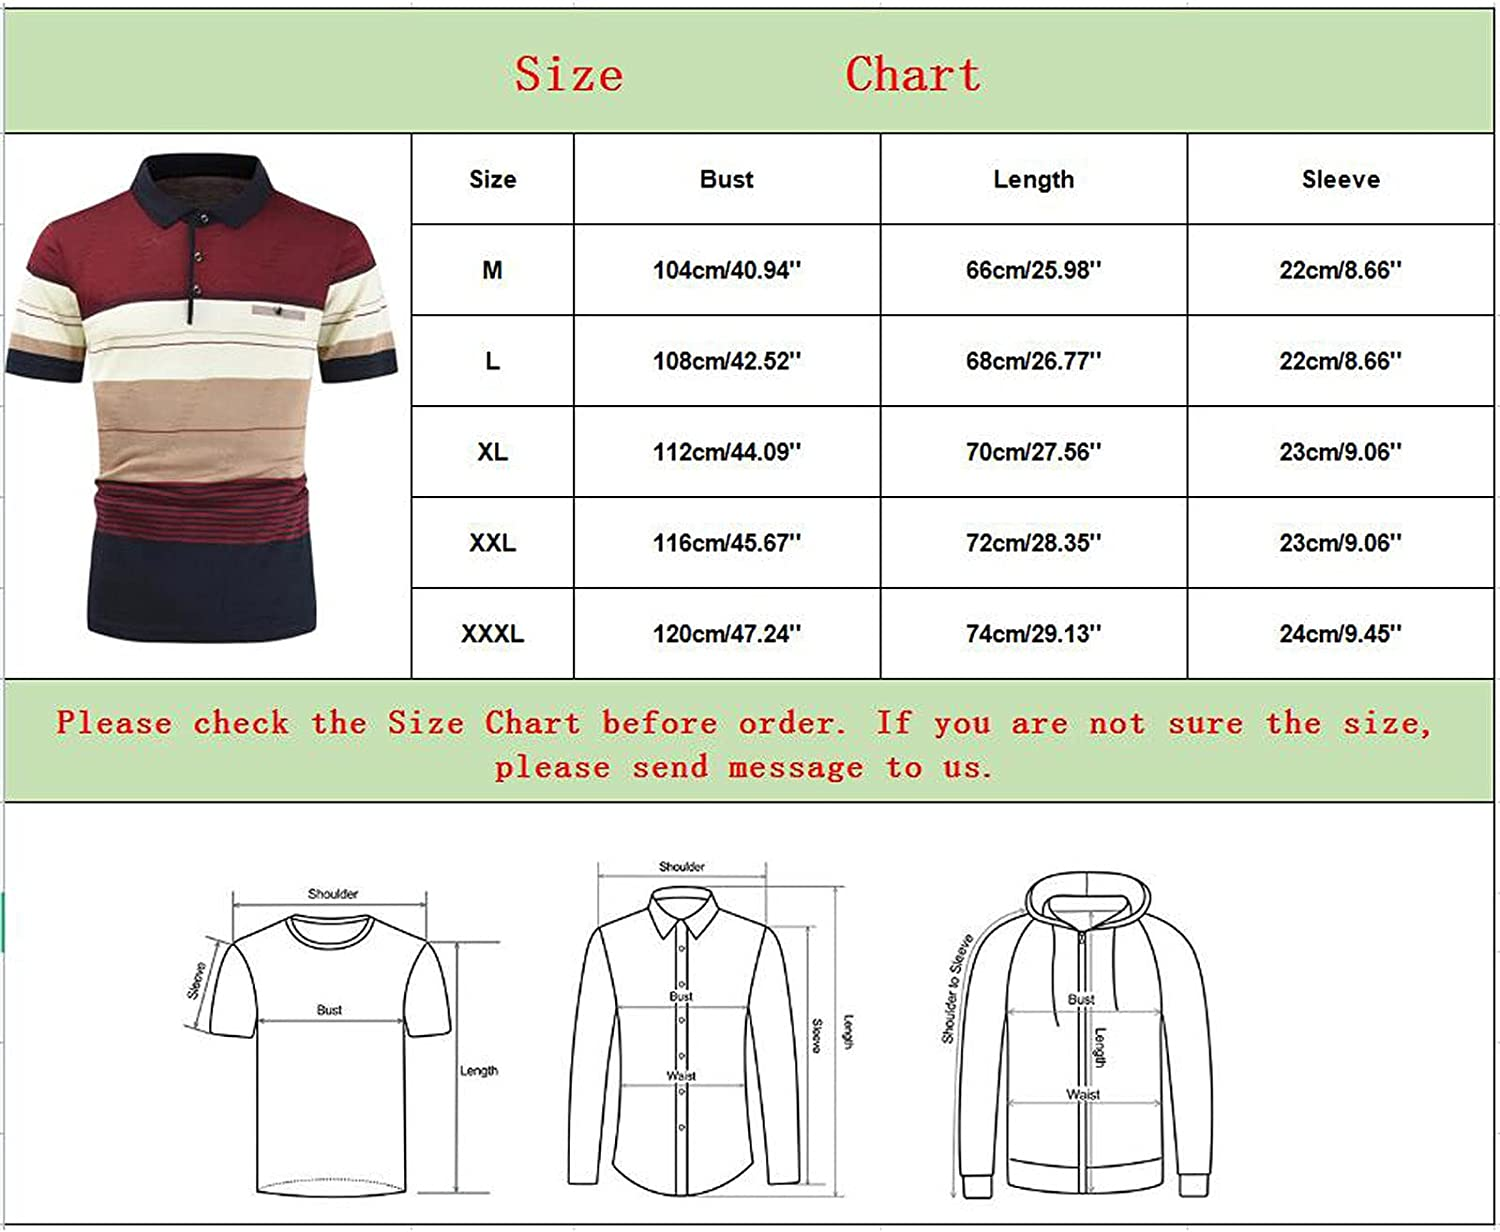 DZQUY Men's Short Sleeve Casual Slim Fit Pique Polo Shirts Summer Hipster Big and Tall Work Shirts Tops with Pocket